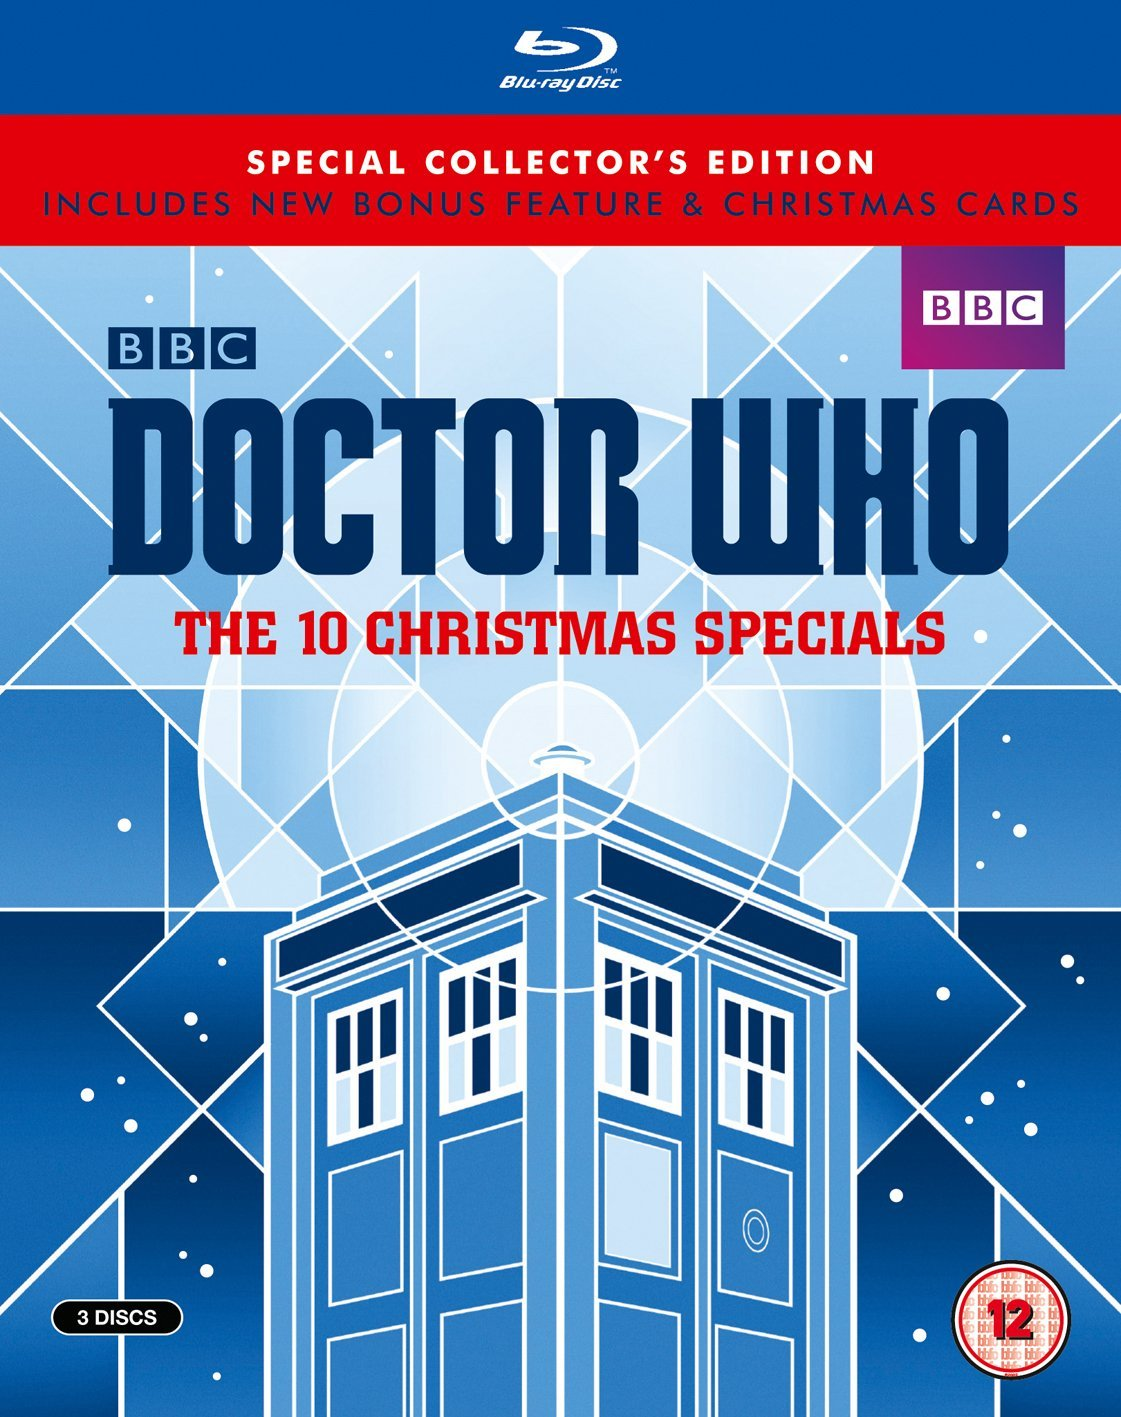 UK RELEASE: Doctor Who: The Christmas Specials OUT NOW!